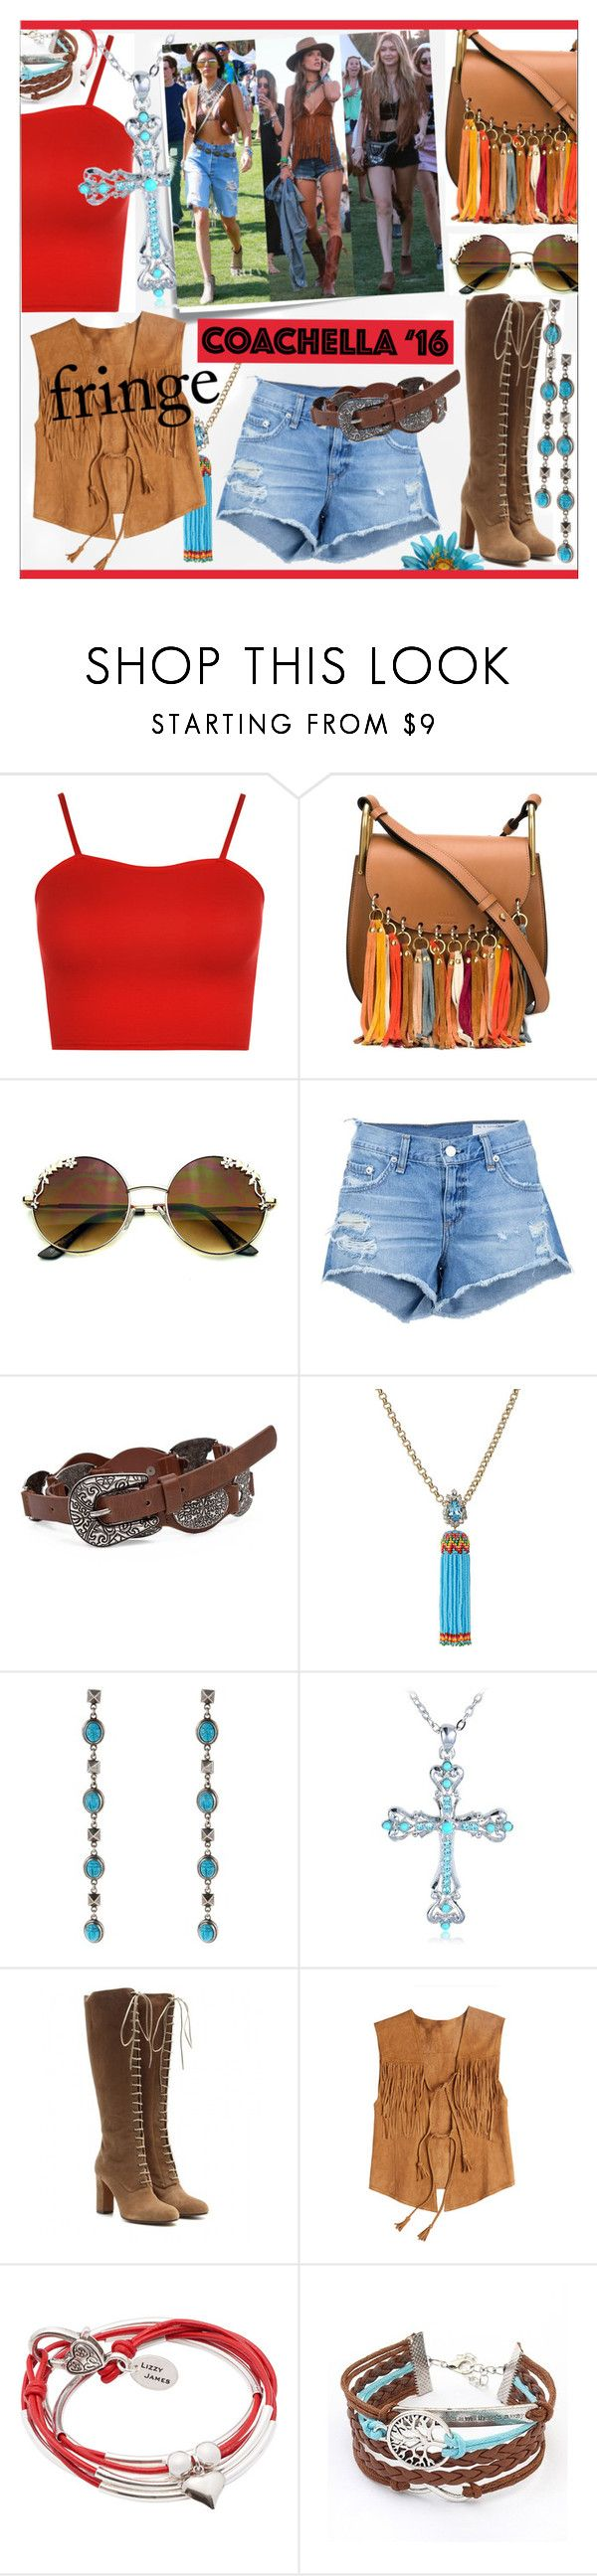 """""""Festival Trend * Fringe!"""" by calamity-jane-always ❤ liked on Polyvore featuring WearAll, Chloé, rag & bone/JEAN, BKE, Shourouk, Valentino, Post-It, Etro, Calypso St. Barth and Lizzy James"""